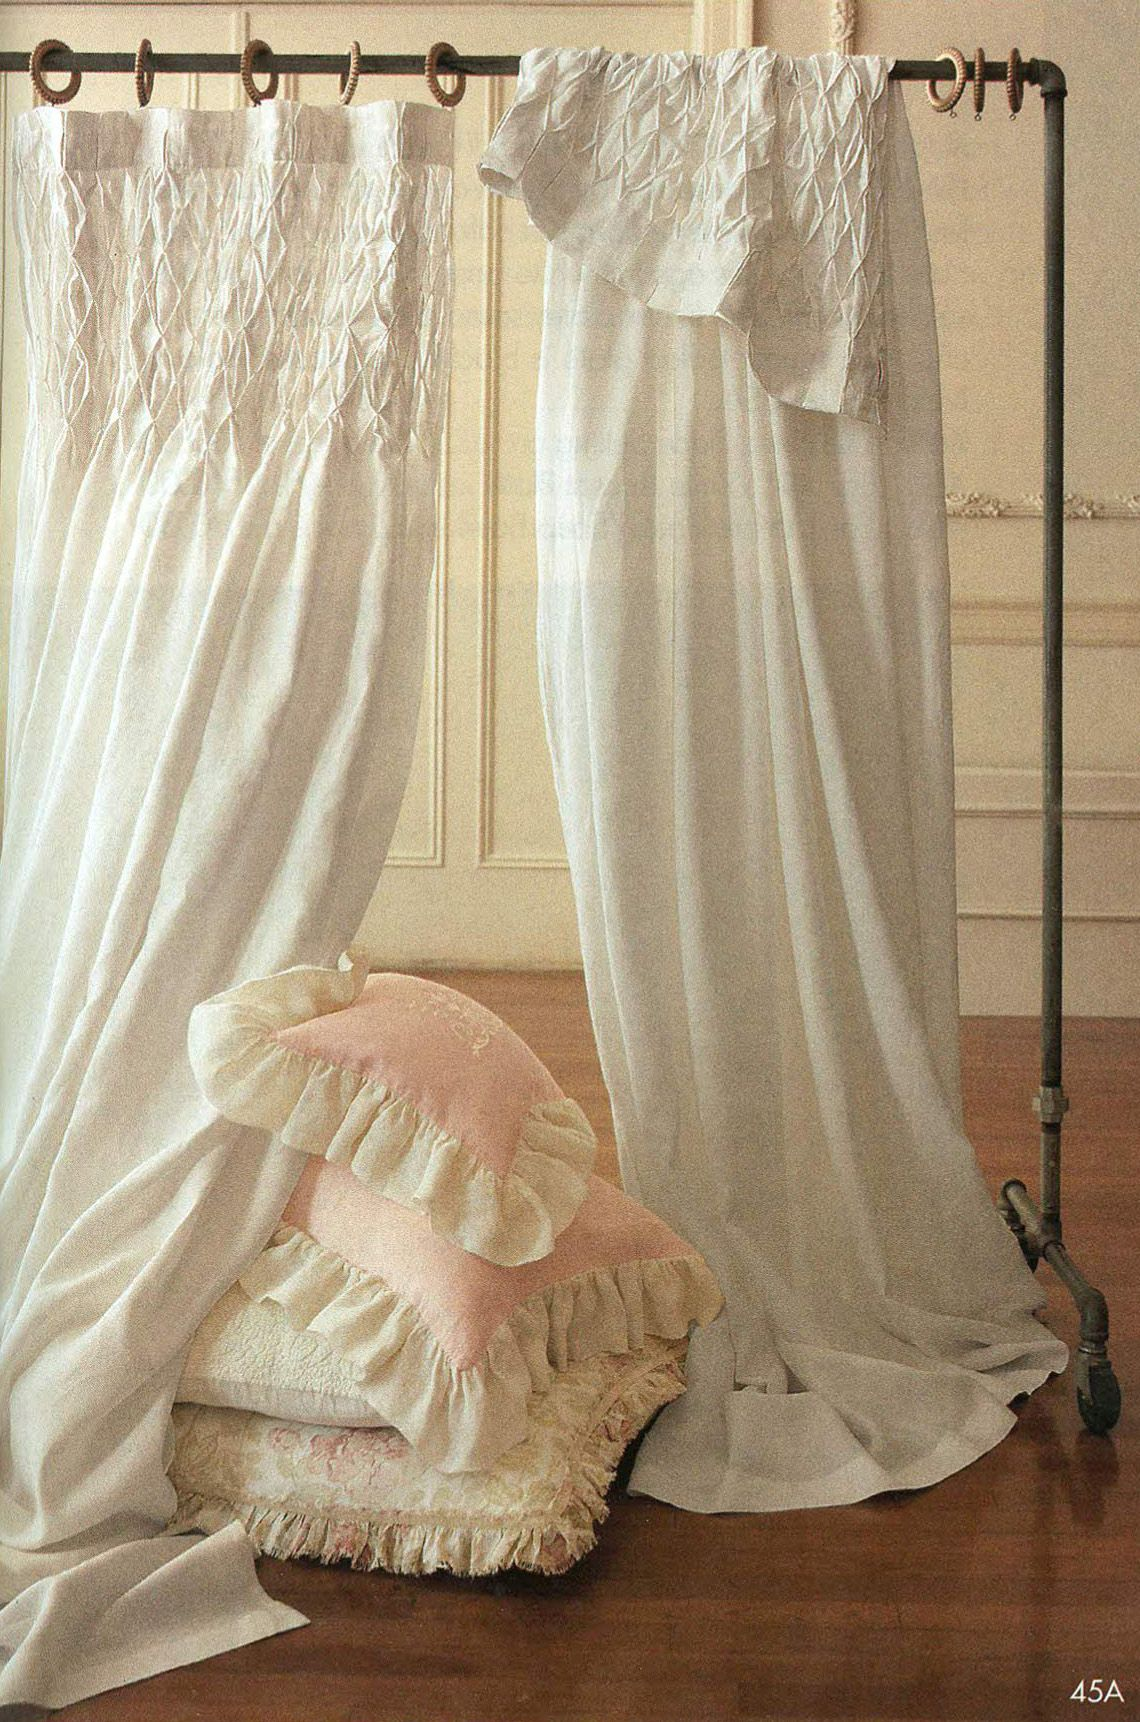 Romantic Luxury Pom Pom At Home Smocked Linen Curtain Panels Romance Drapes Curtains